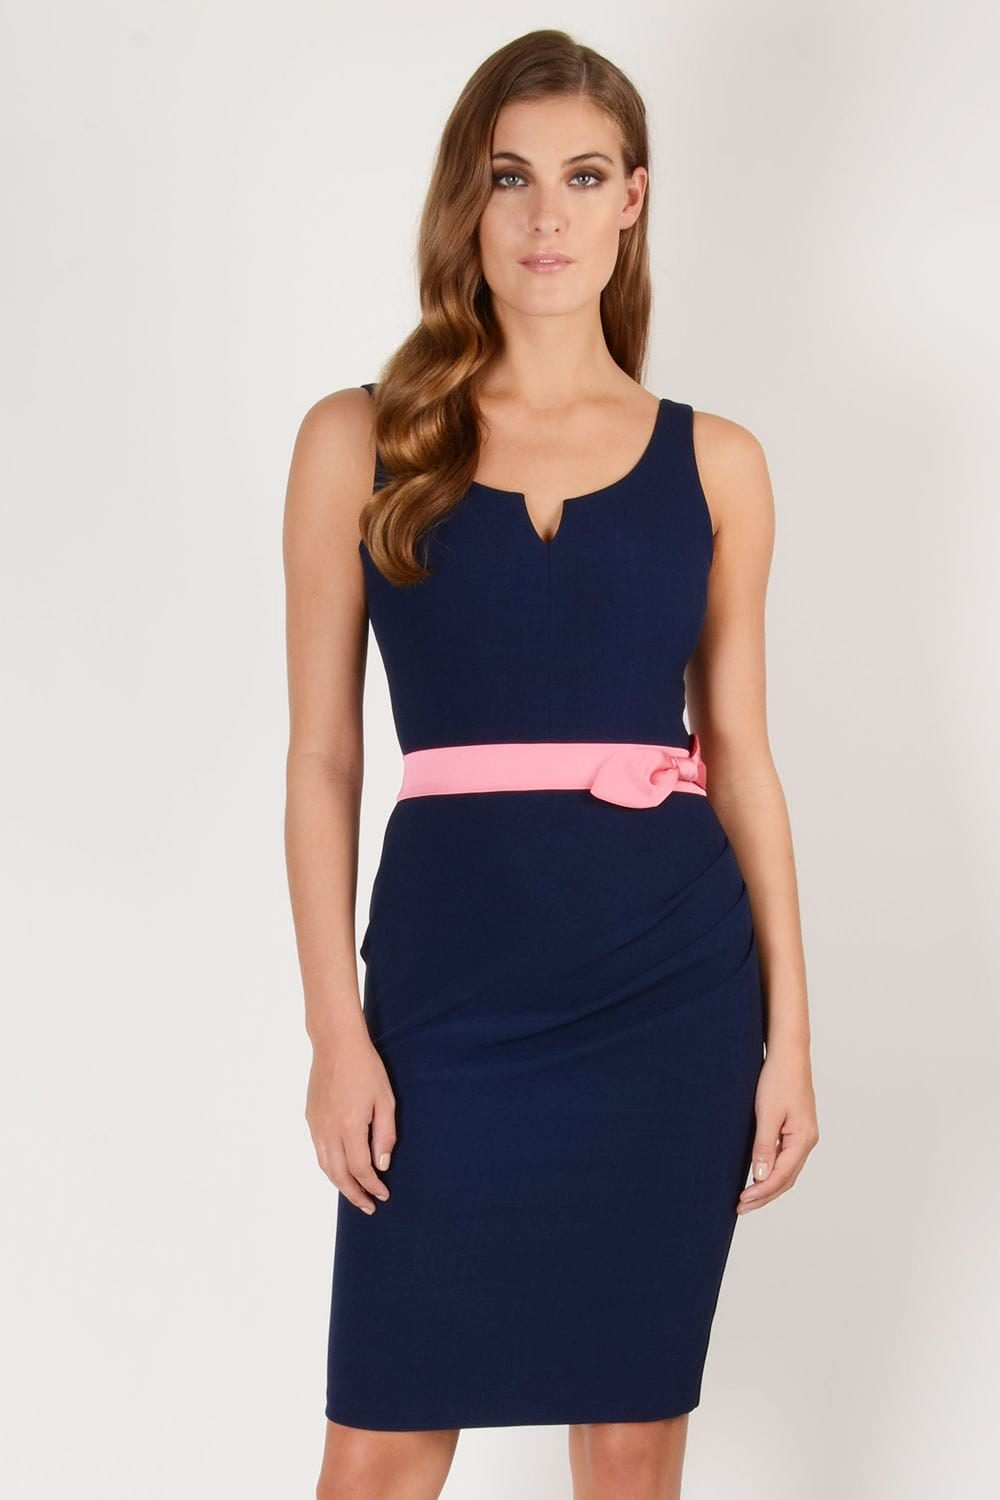 Hybrid Fashion 1218 Lilith Sleeveless Pencil Dress